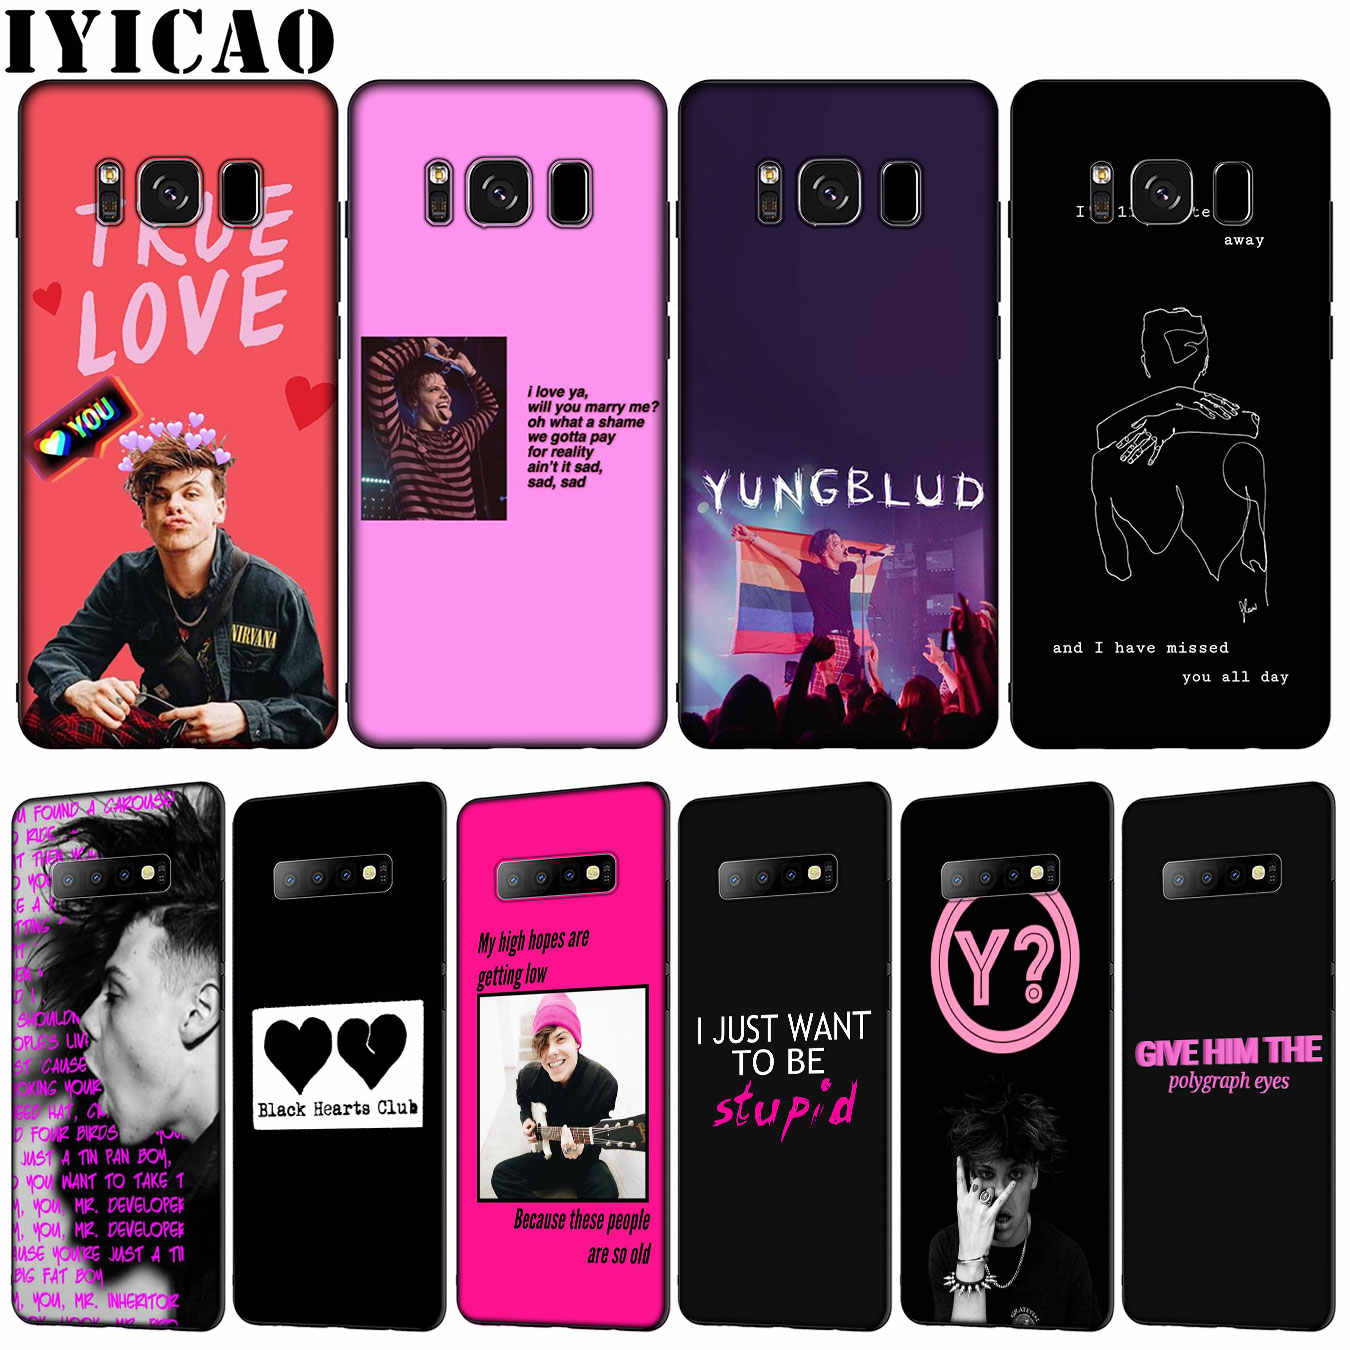 Yungblud Rapper SINGER Soft TPU ซิลิโคนสำหรับ Samsung Galaxy S10 E S9 S8 PLUS S6 S7 EDGE S10e